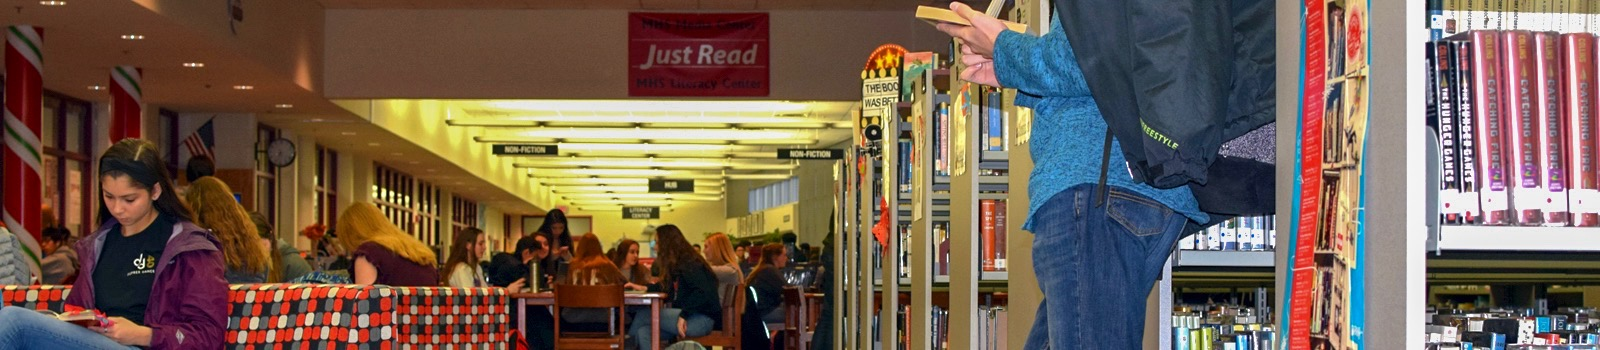 students reading in media center